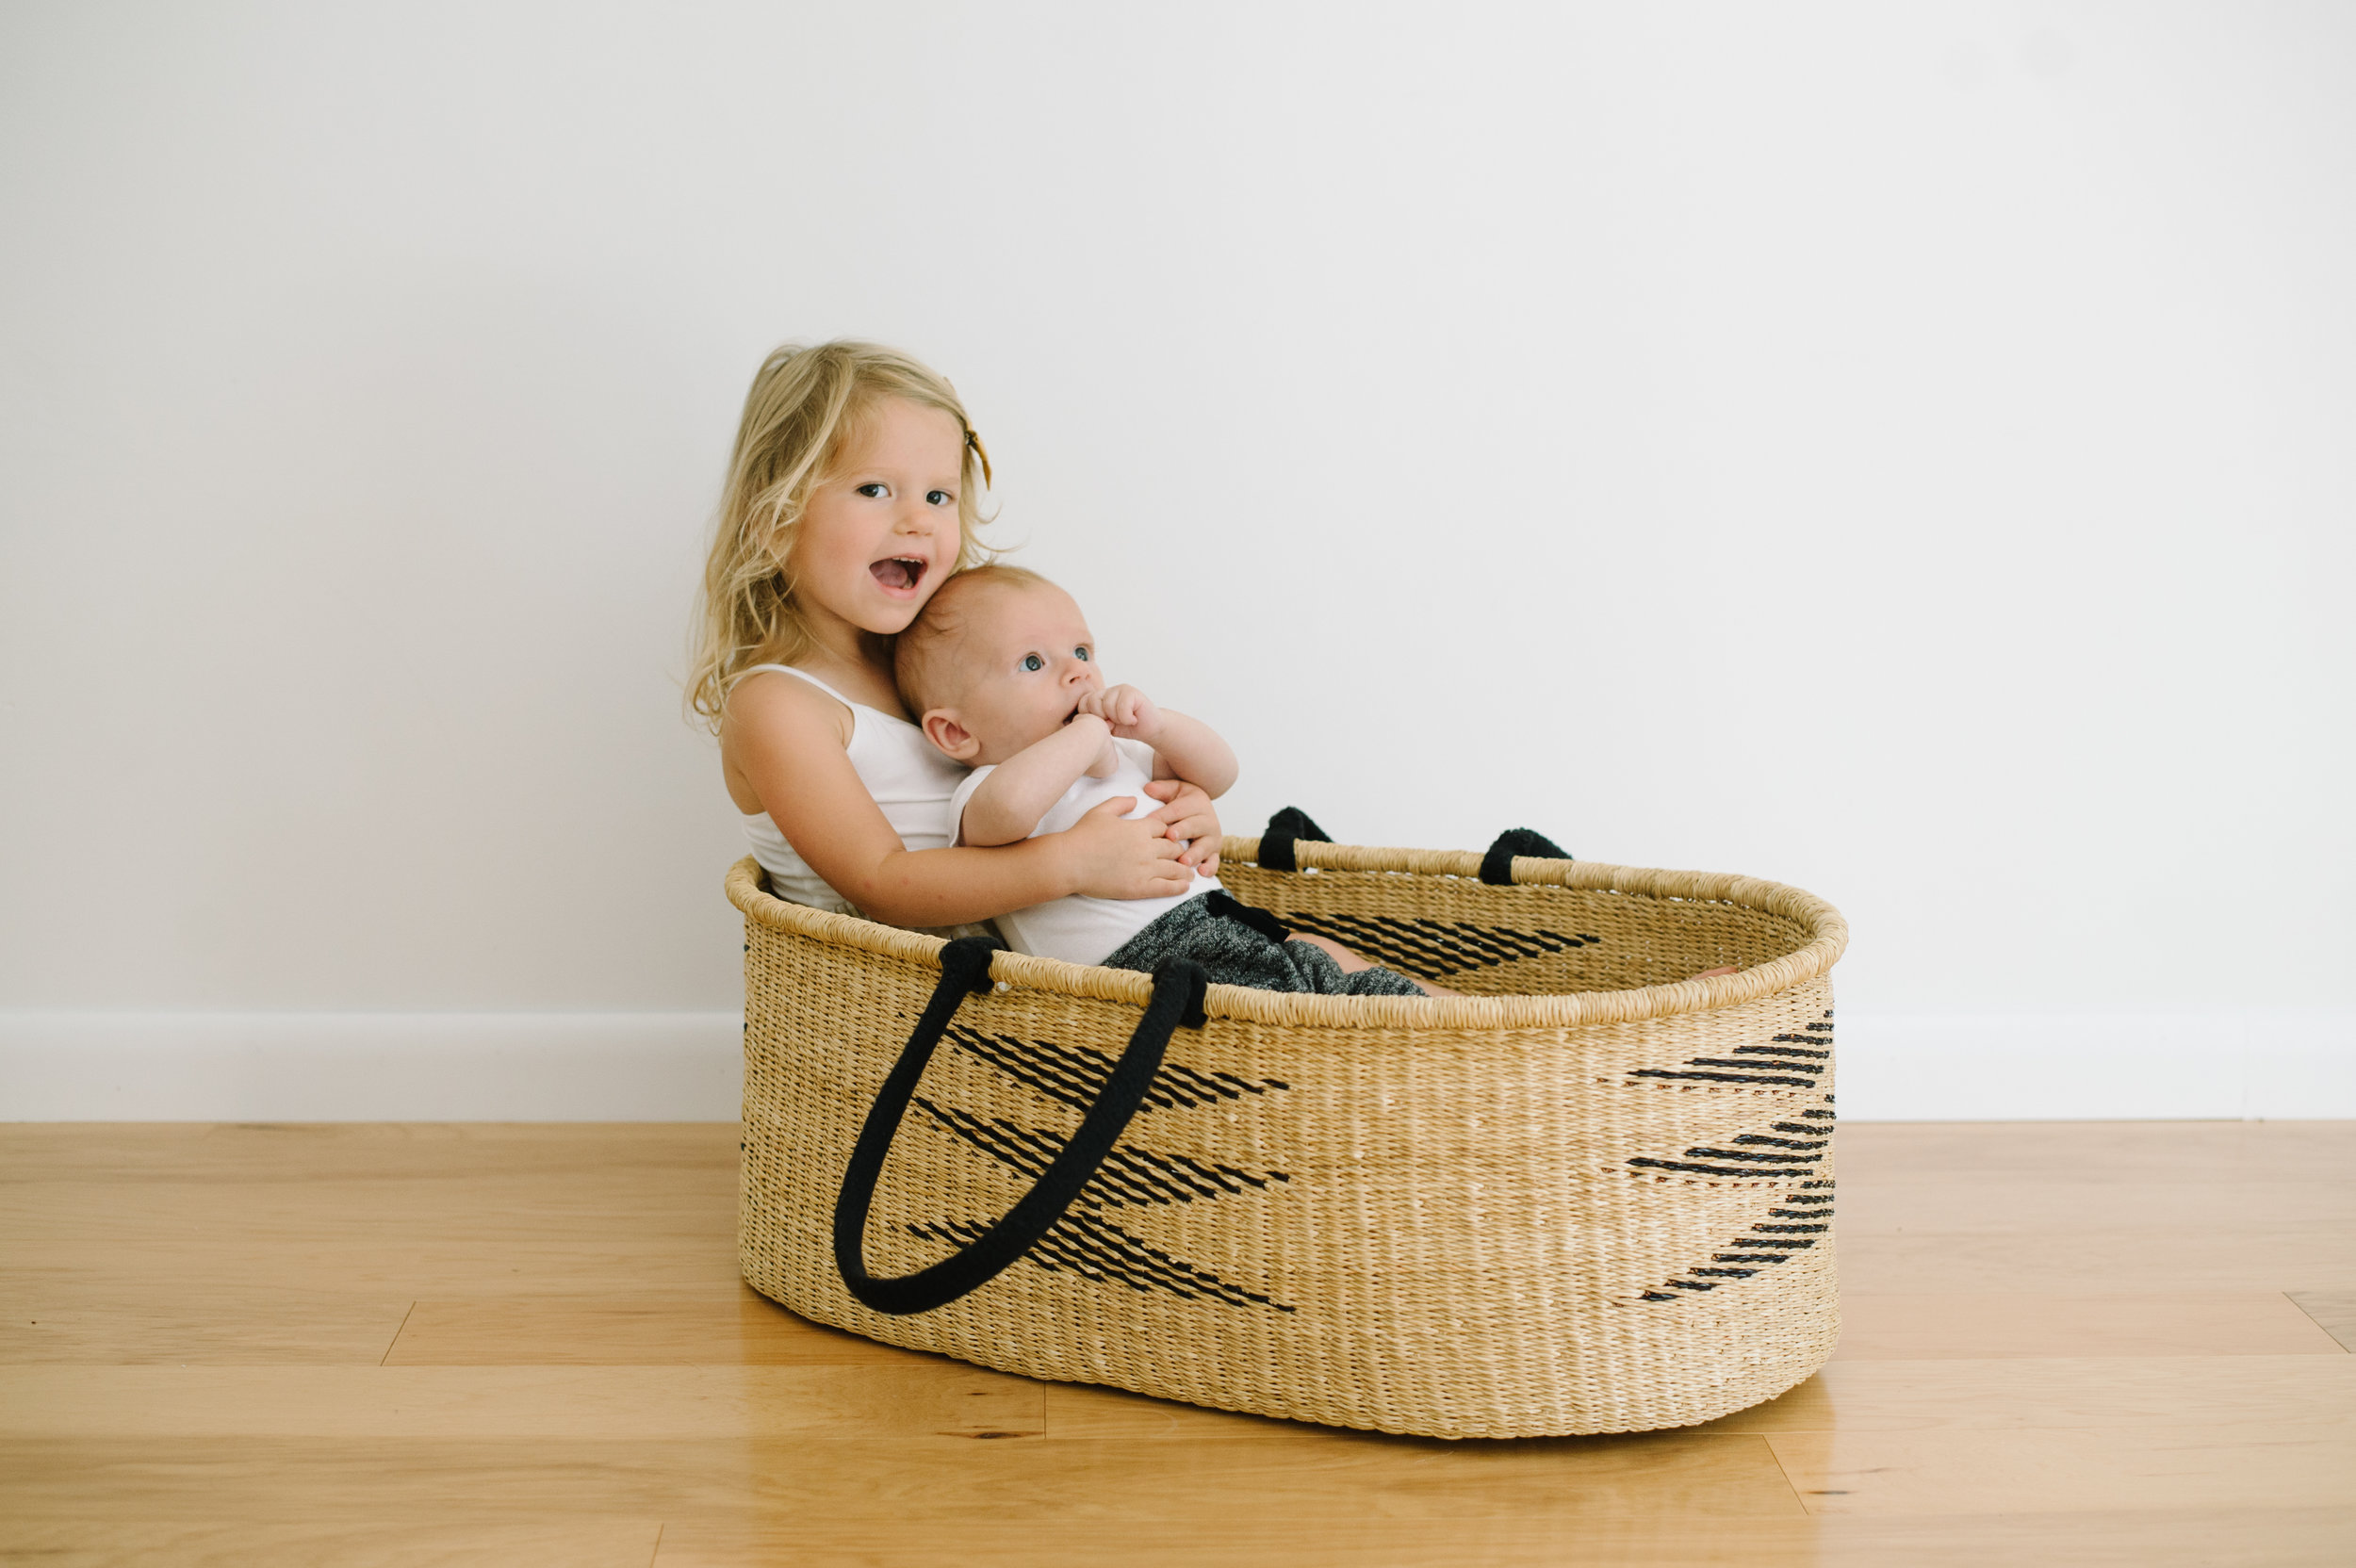 What's cuter than a baby in a basket? Your baby holding your other baby, I think. June is so proud to be holding Graham in his bassinet for his three month photos.